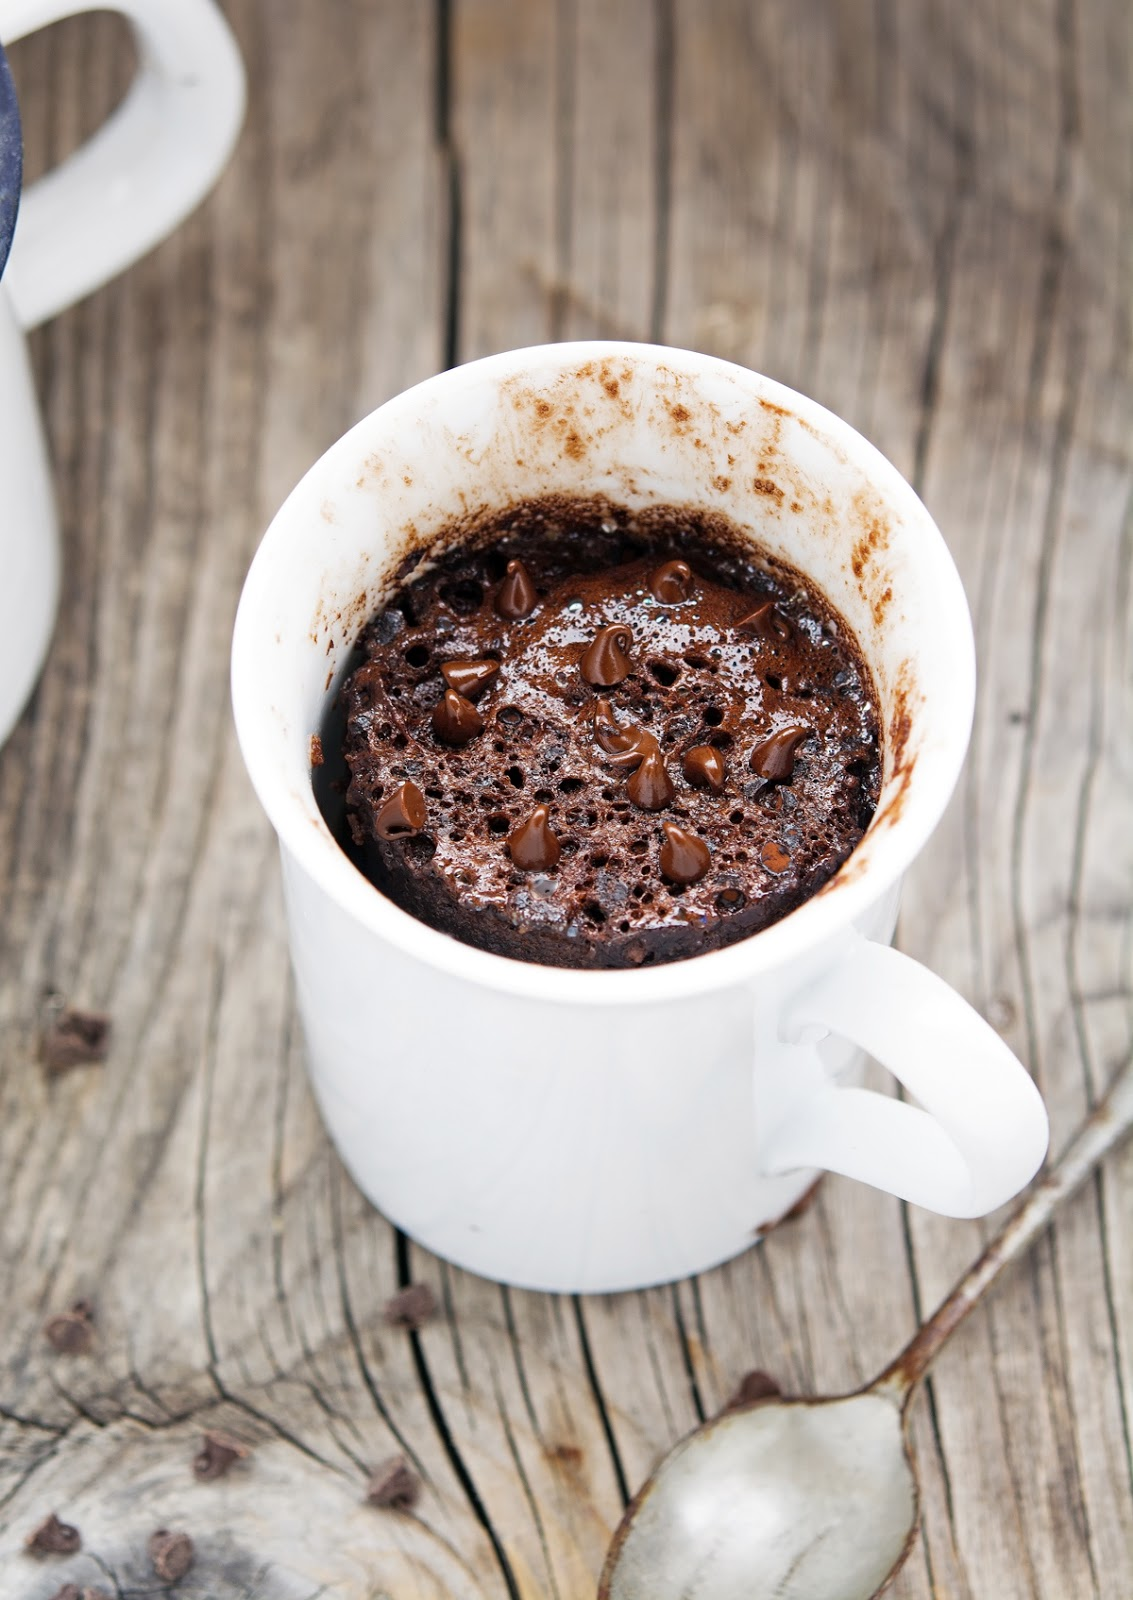 (Paleo) 1-Minute Chocolate Brownie In A Mug